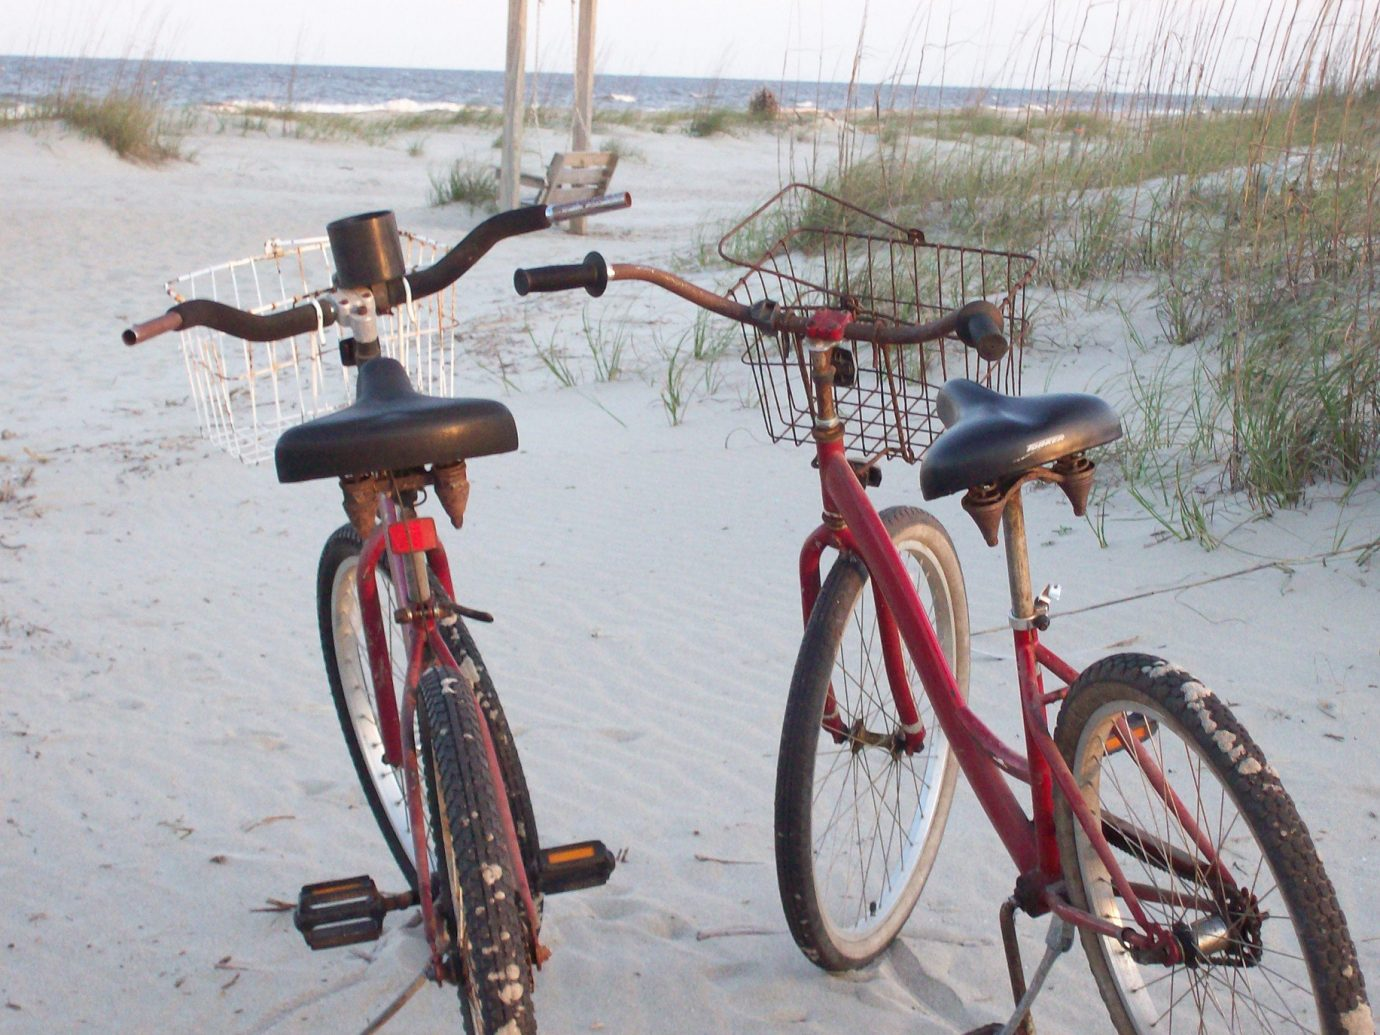 Bikes on the beach in Savannah, GA